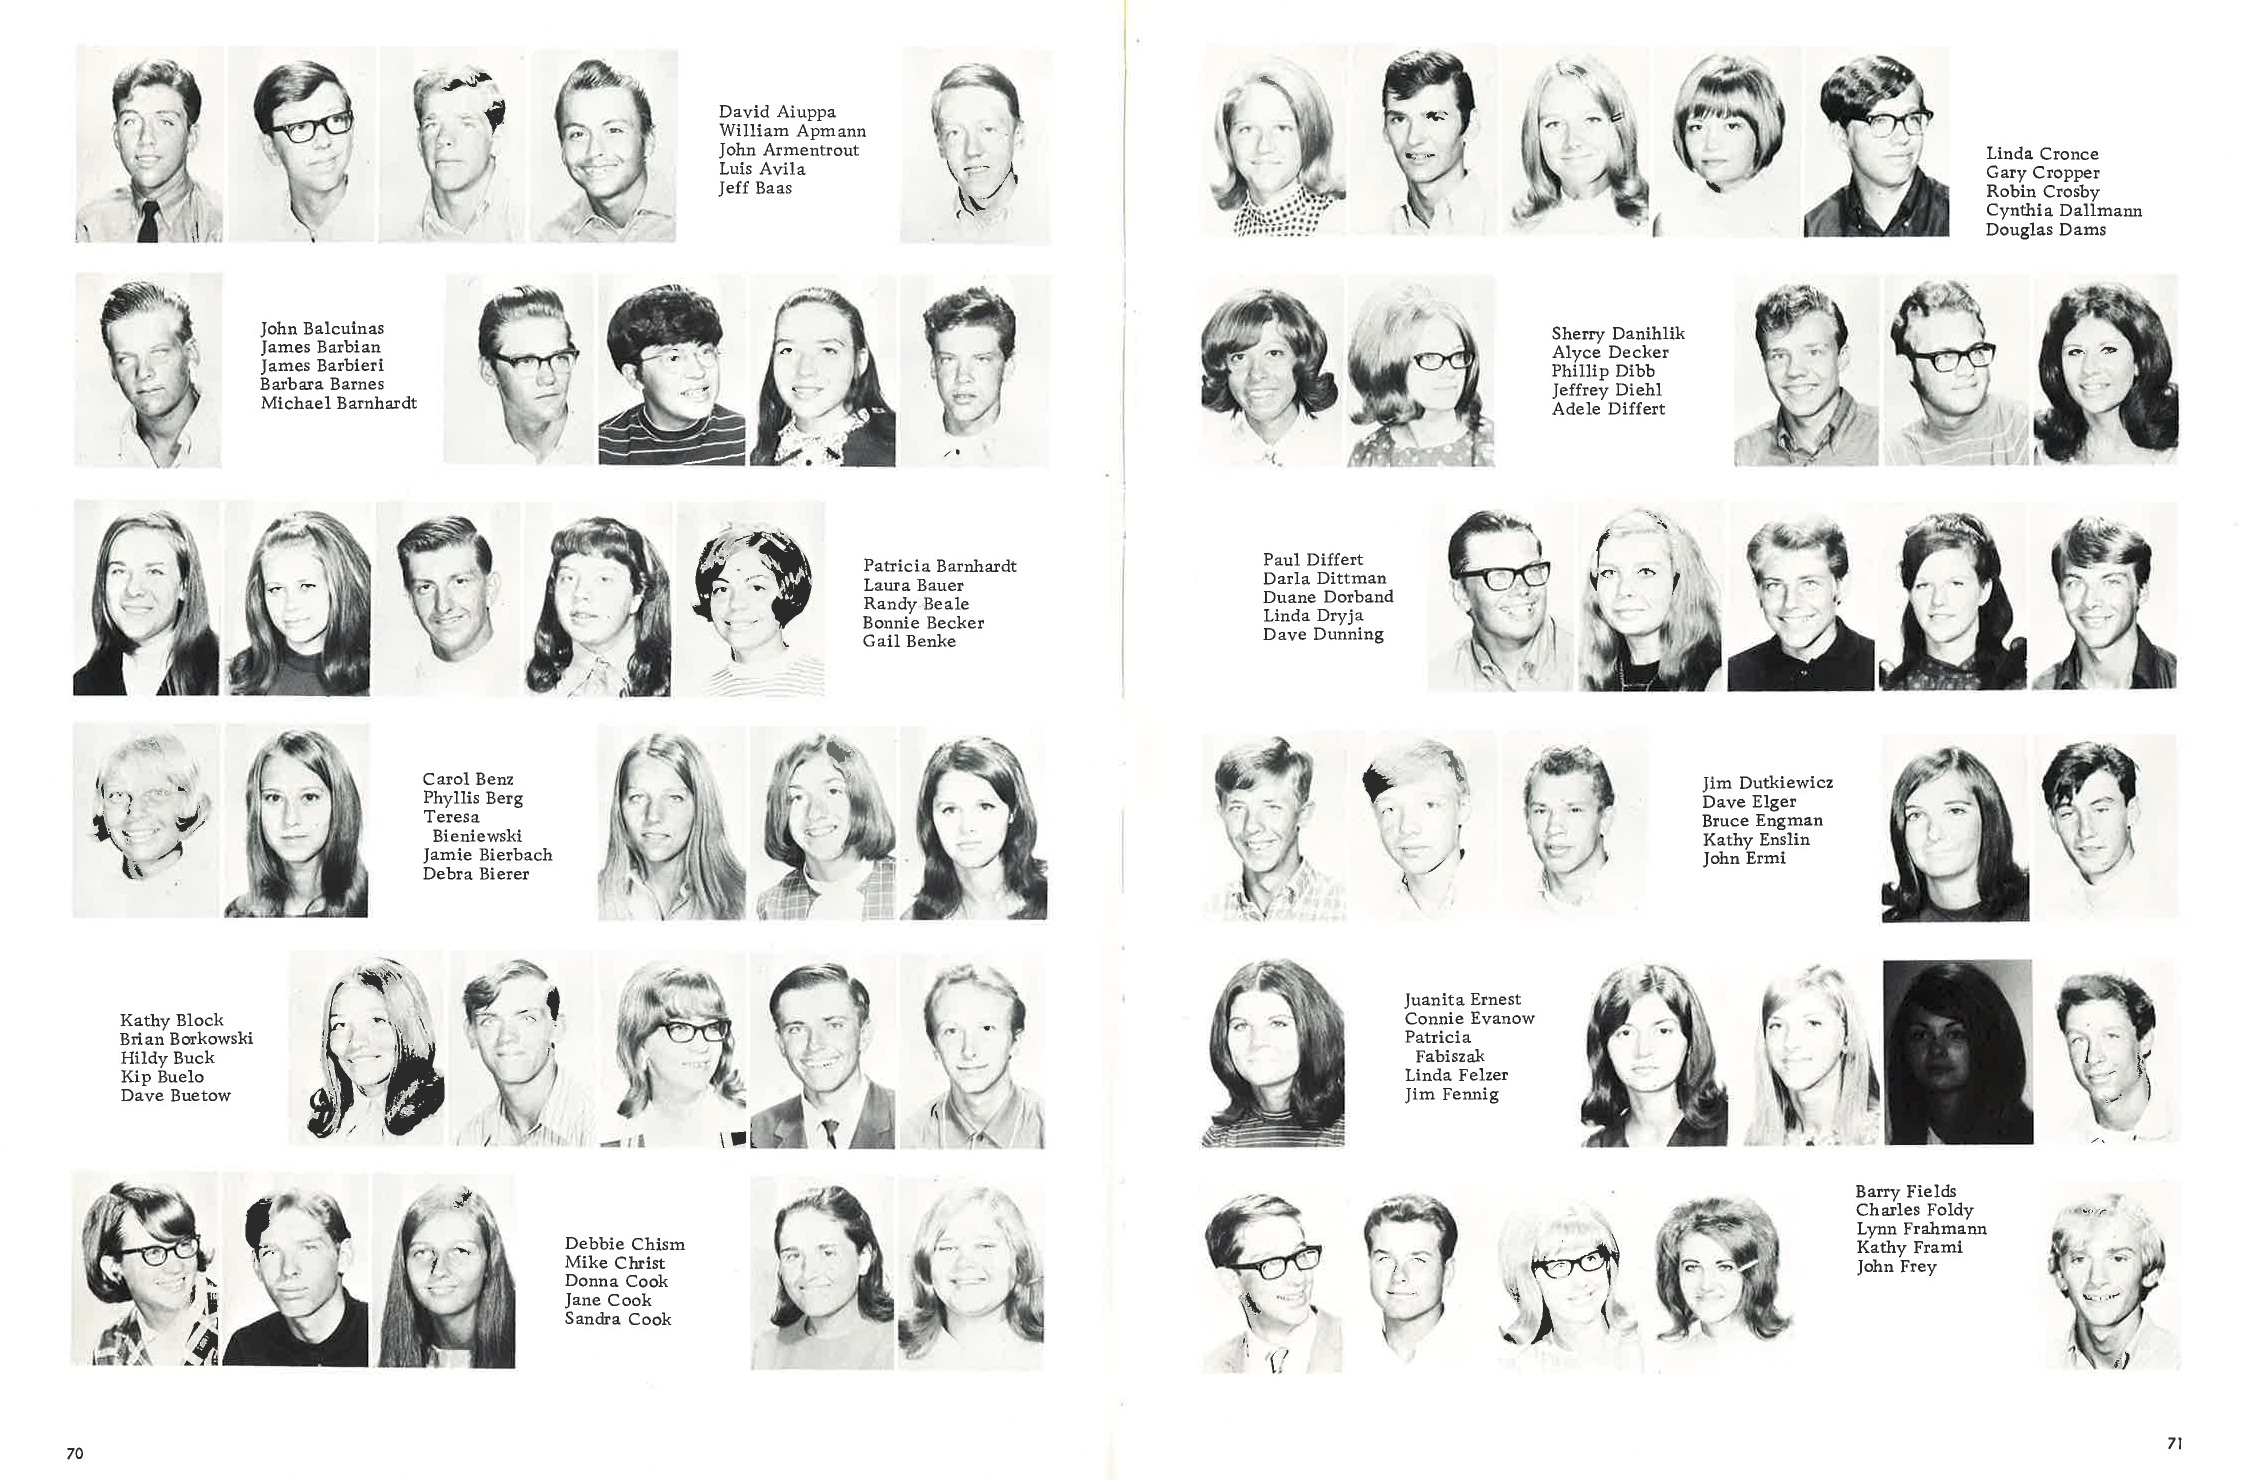 1970_Yearbook_70-71.jpg